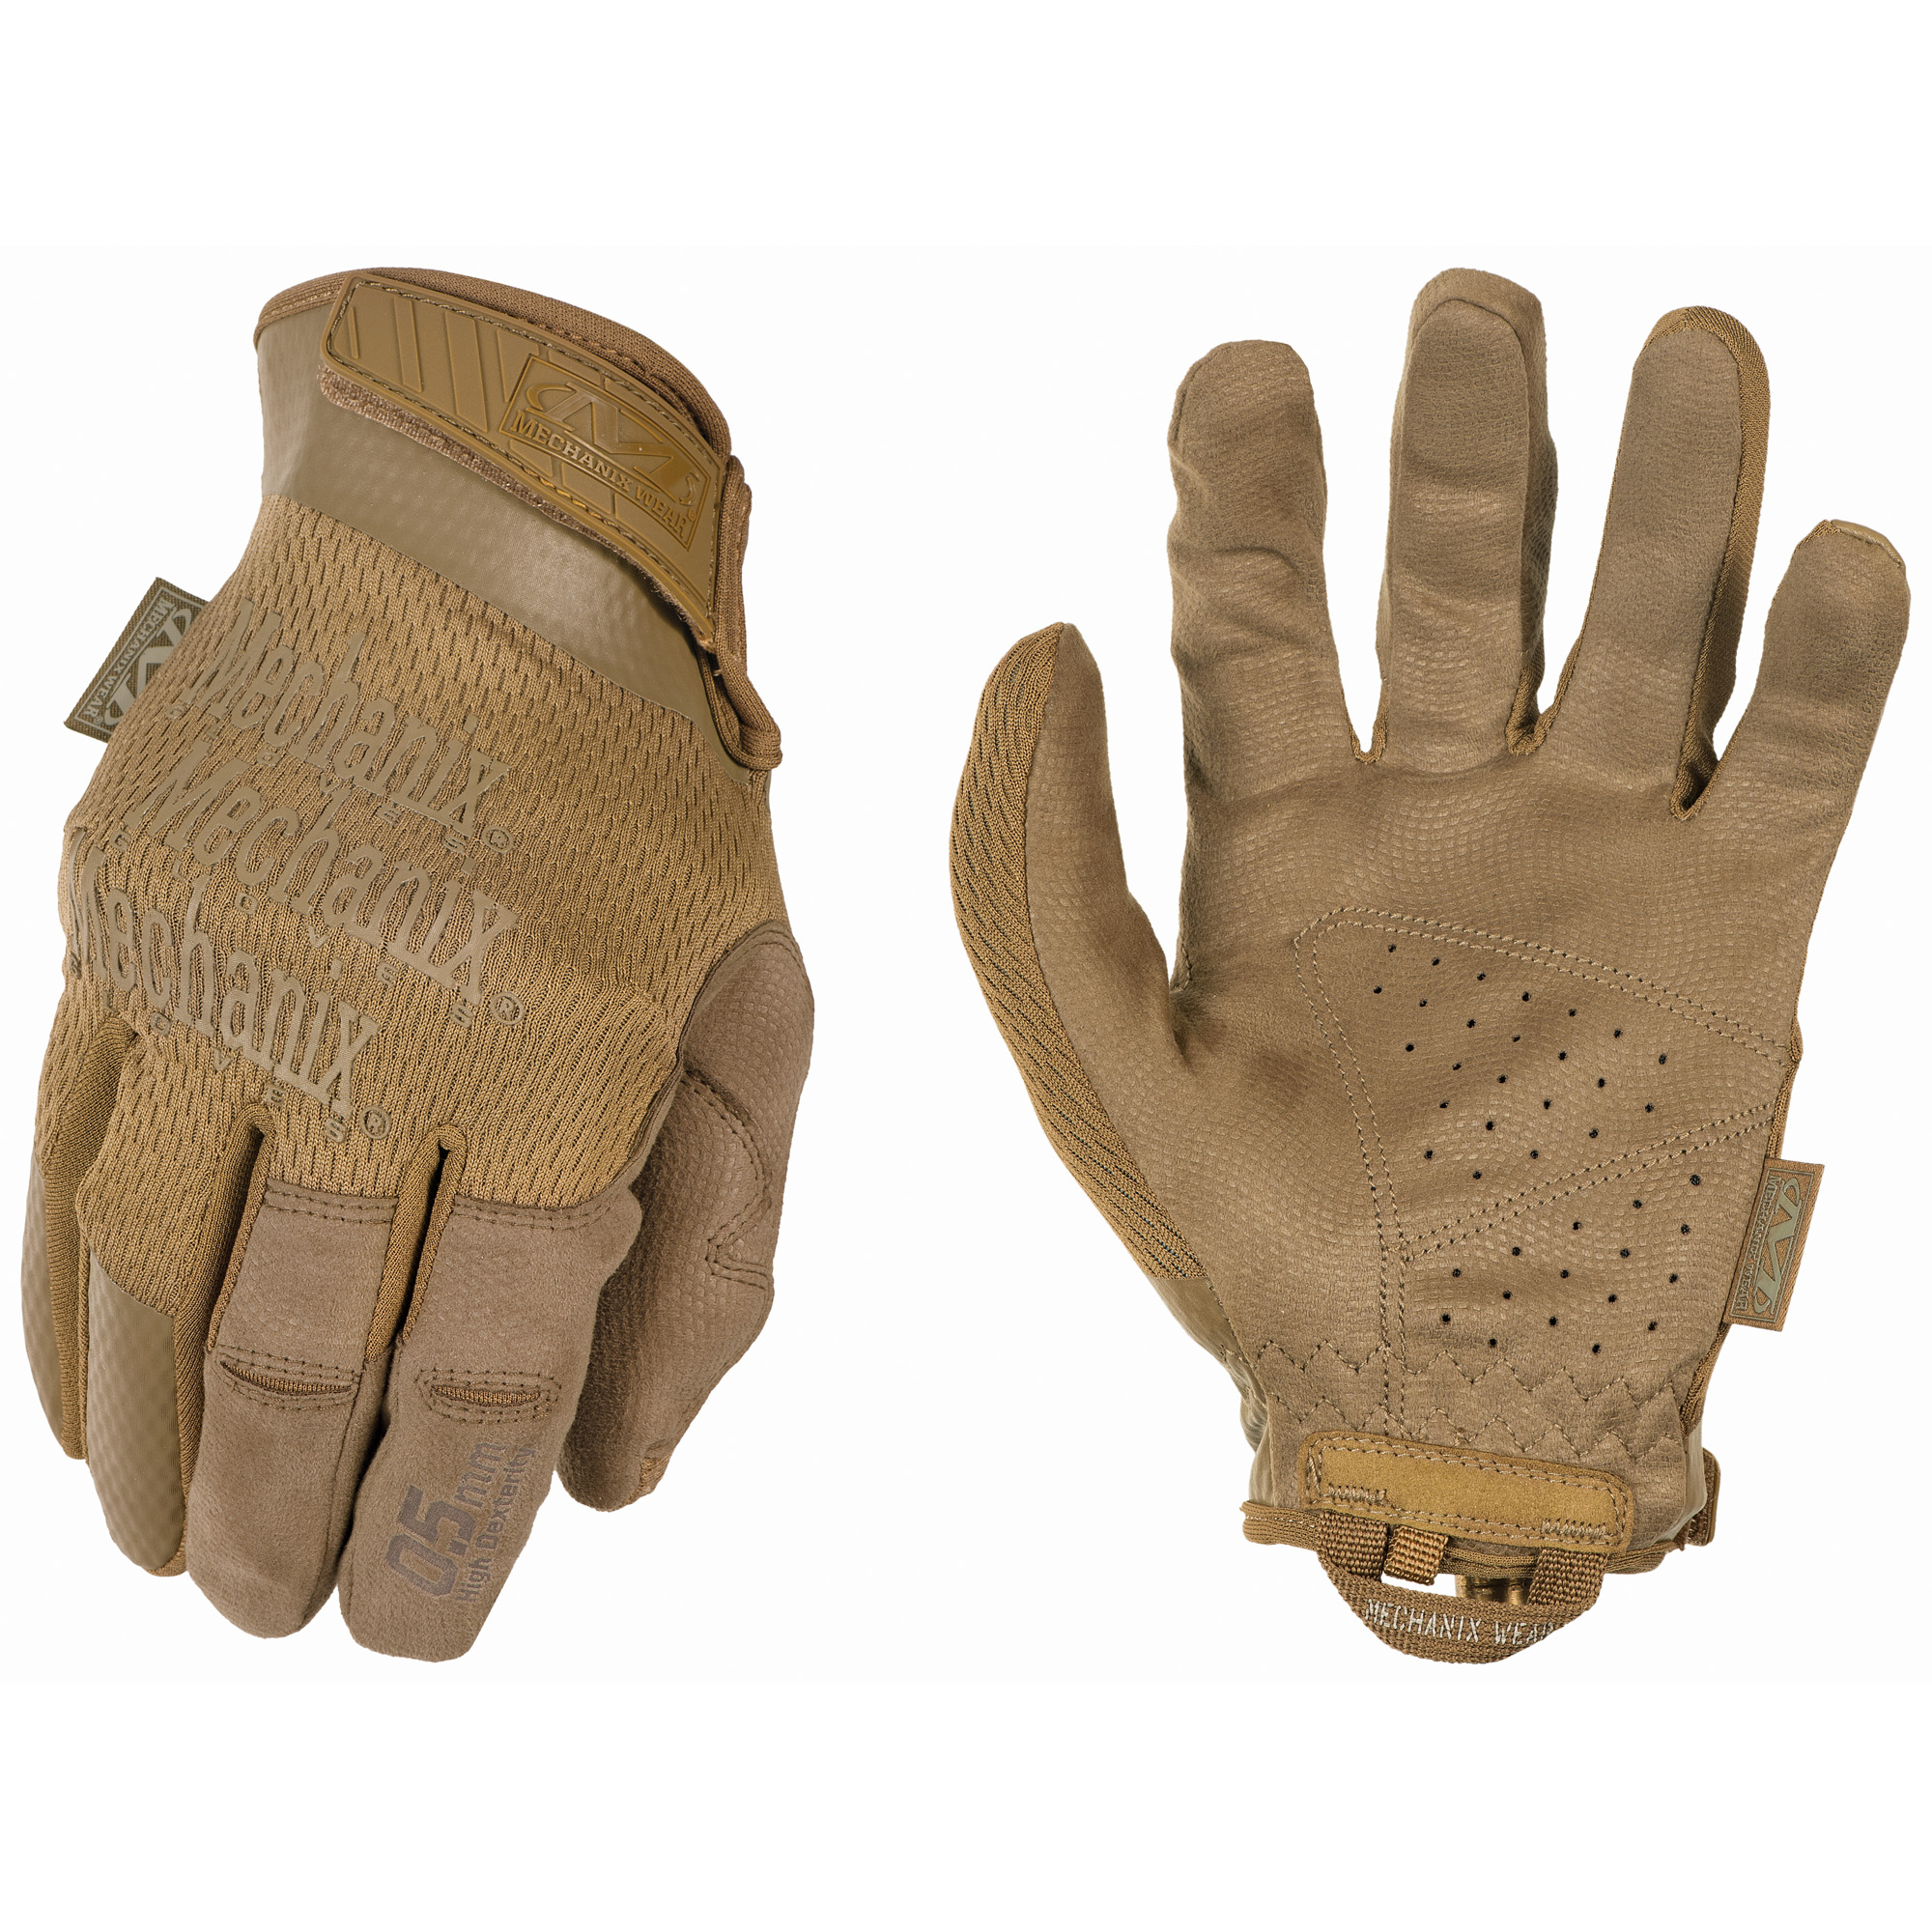 Mechanix Wear Spl 0.5mm Coyote Small